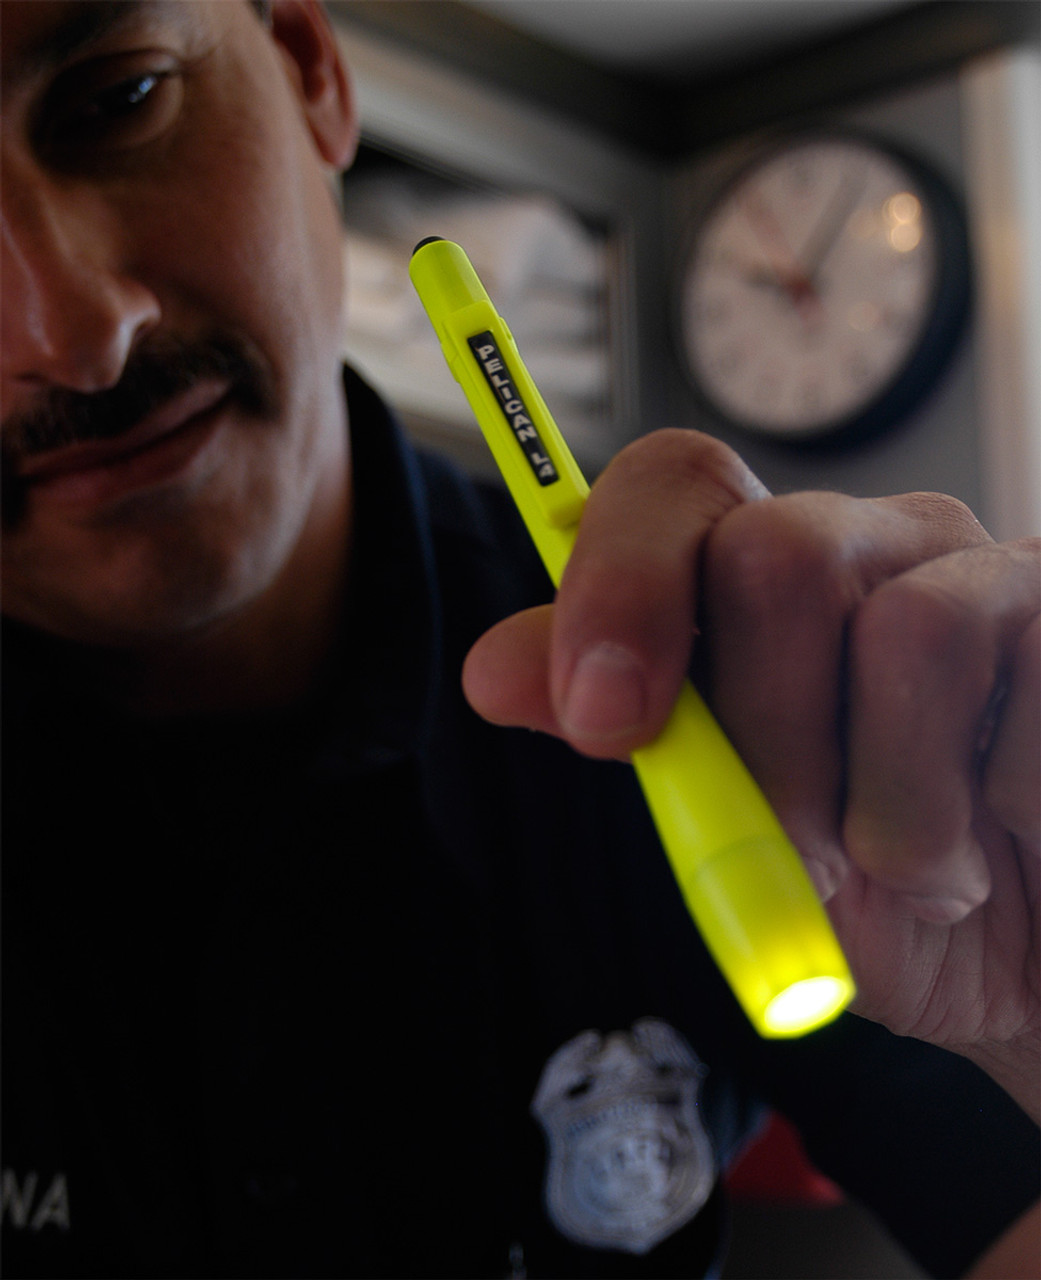 Pelican L4™ LED Flashlight, With 50+ hours of battery life, Light weight, comfortable and well-balanced, Available in Black or High Visibility Yellow 1830